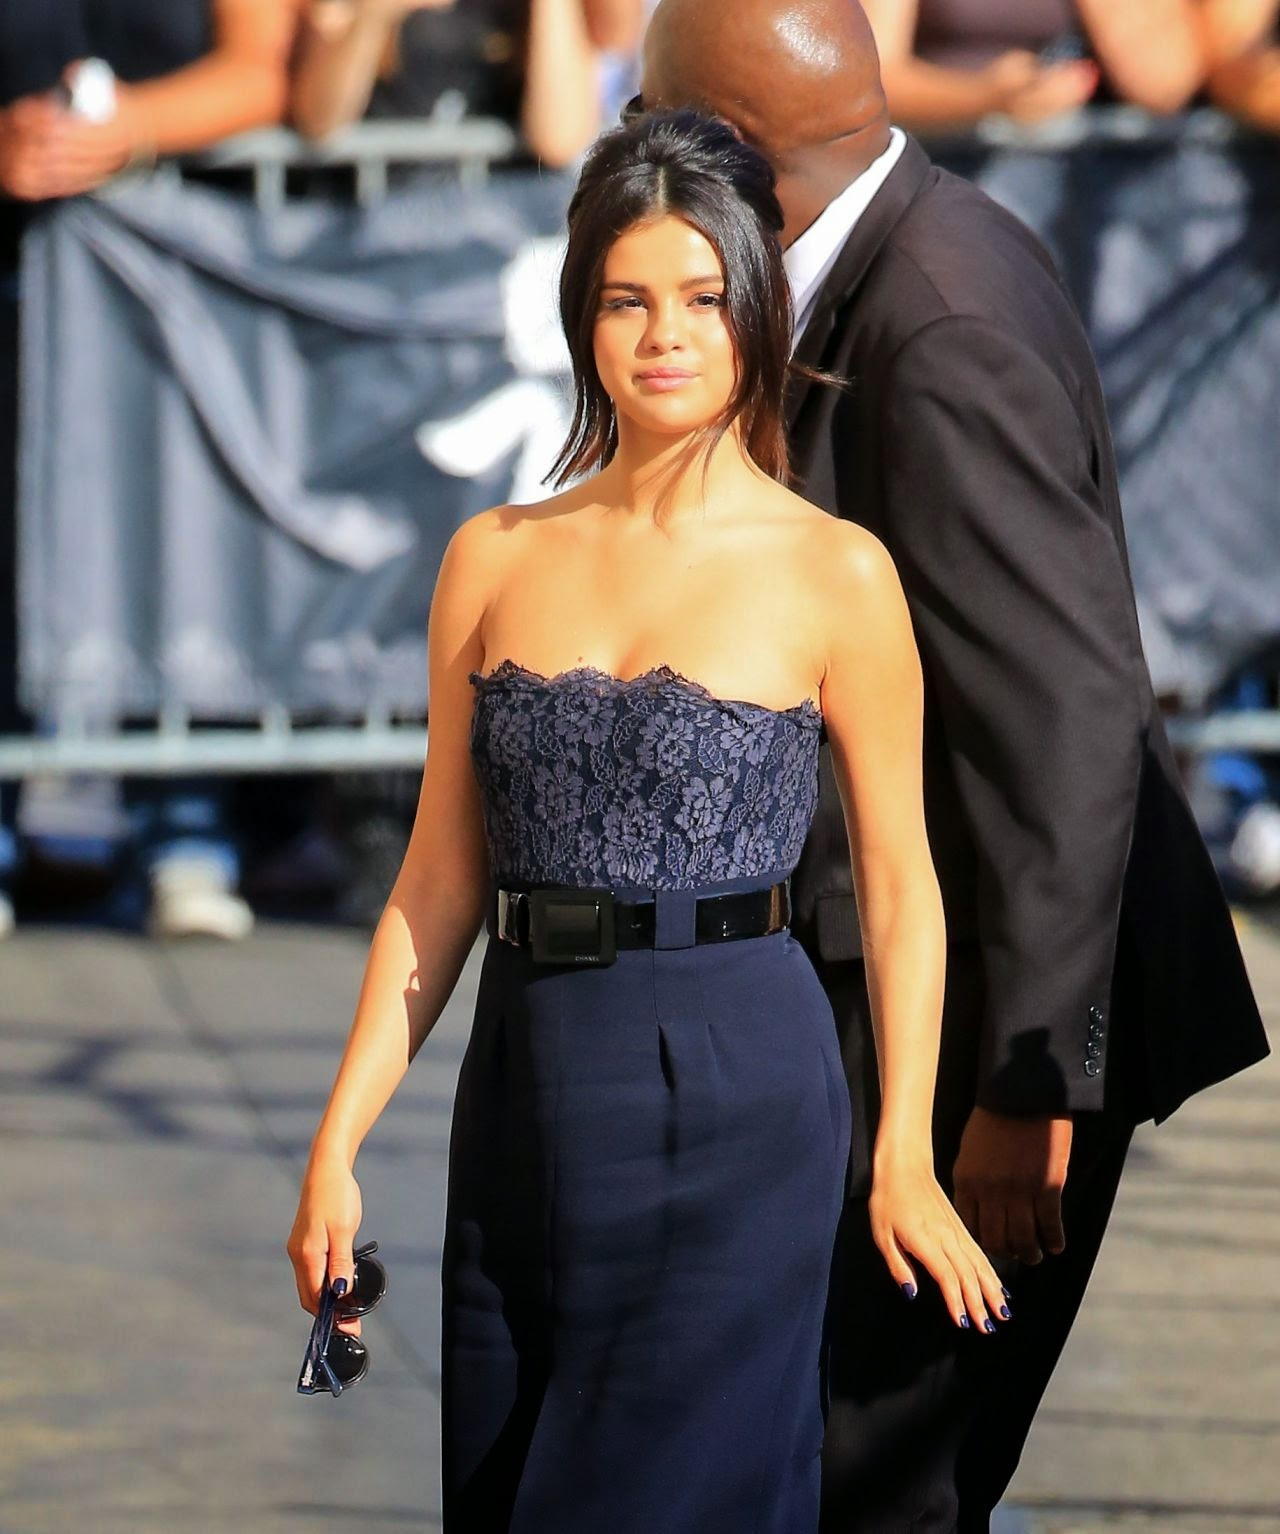 Selena Gomez arrives at Jimmy Kimmel Live in a strapless navy dress